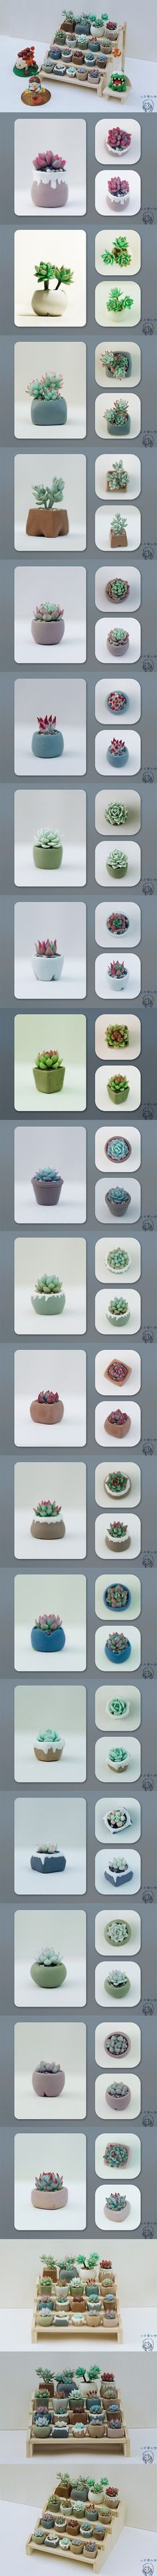 /yannarra/ - Oo! Maybe I'll commission some polymer succulents!